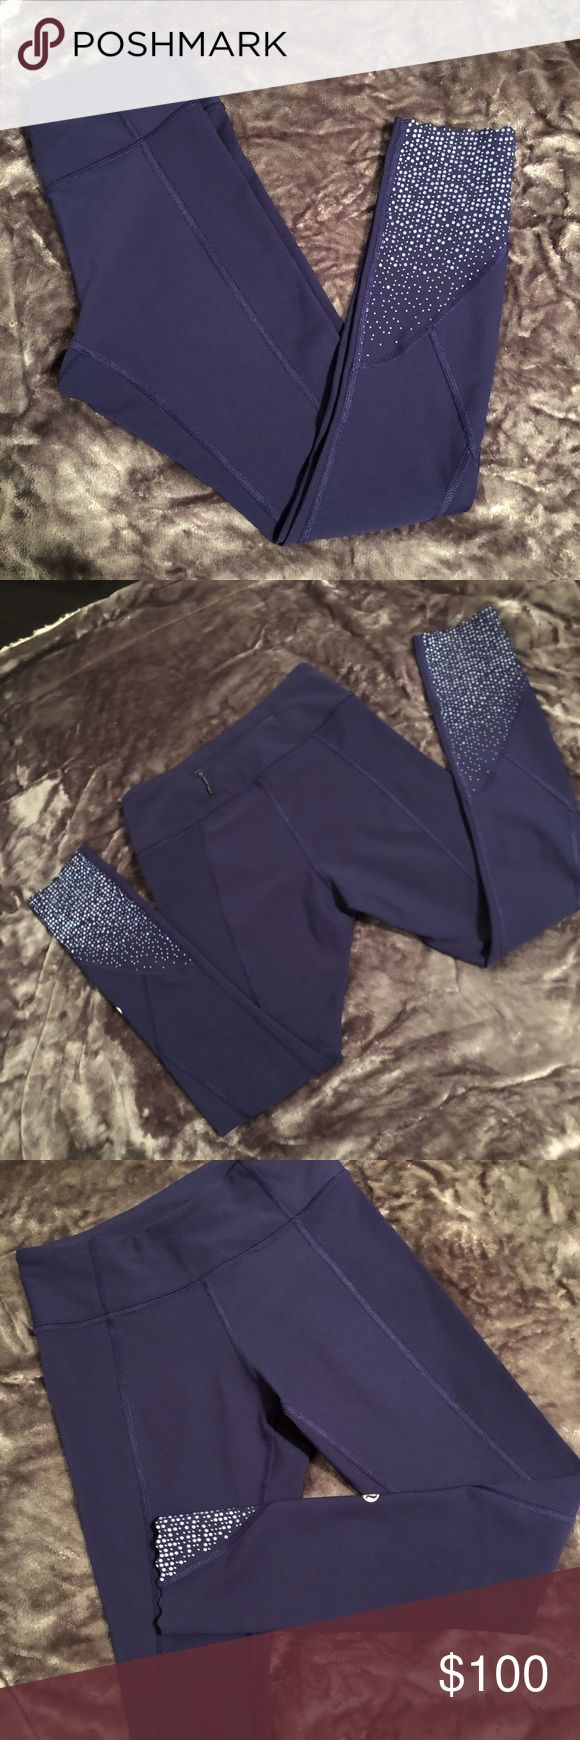 EUC Tight Stuff Tight II 1st Release In Hero Blue EUC Size 4 Tight Stuff 7/8 in Hero Blue. Amazing condition - no pills, stains or holes. Such a vibrant blue pair of leggings with really cool reflective dot and scallop detailing along the ankle. Selling because I have too many pairs of blue leggings 😅 open to trades for other similarly priced lulu 💕 feel free to ask me questions! The stock picture (of the butt ) is true to color - the lighting at my house sucks haha. lululemon athletica…